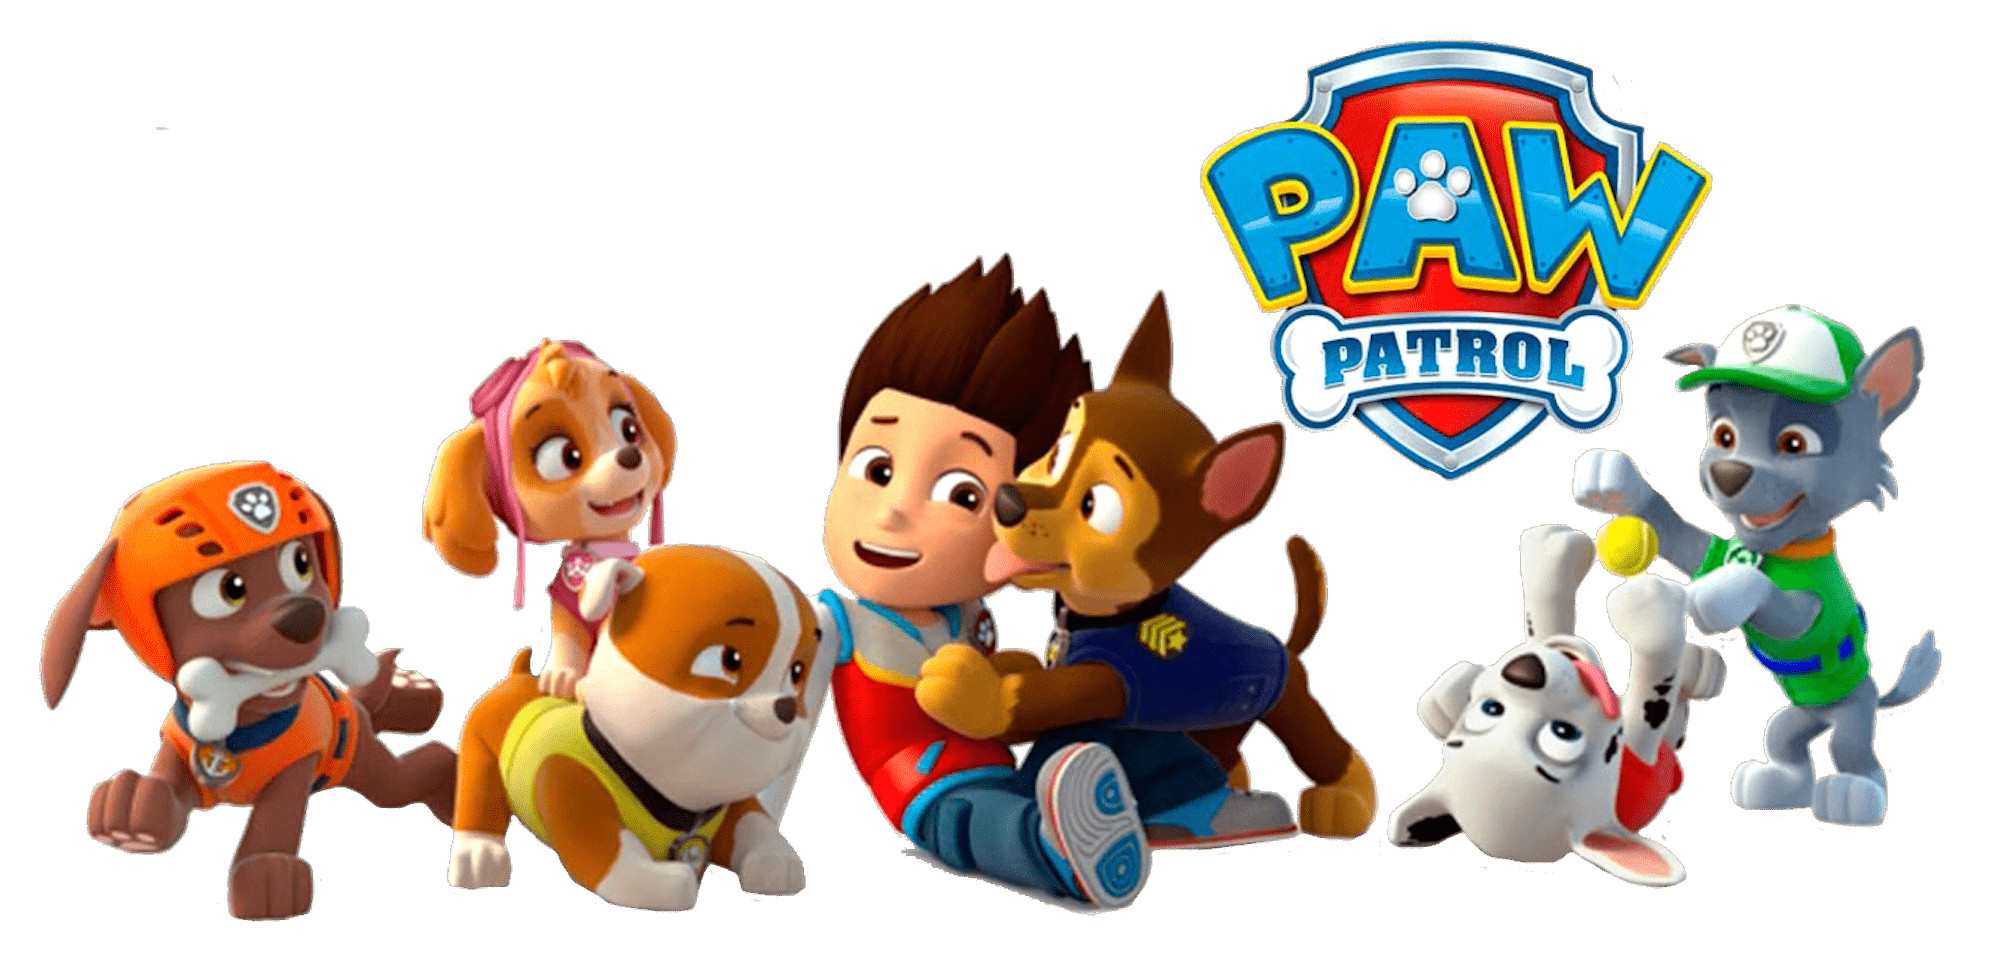 Patrol clipart paw patrol. Ryder with chase png